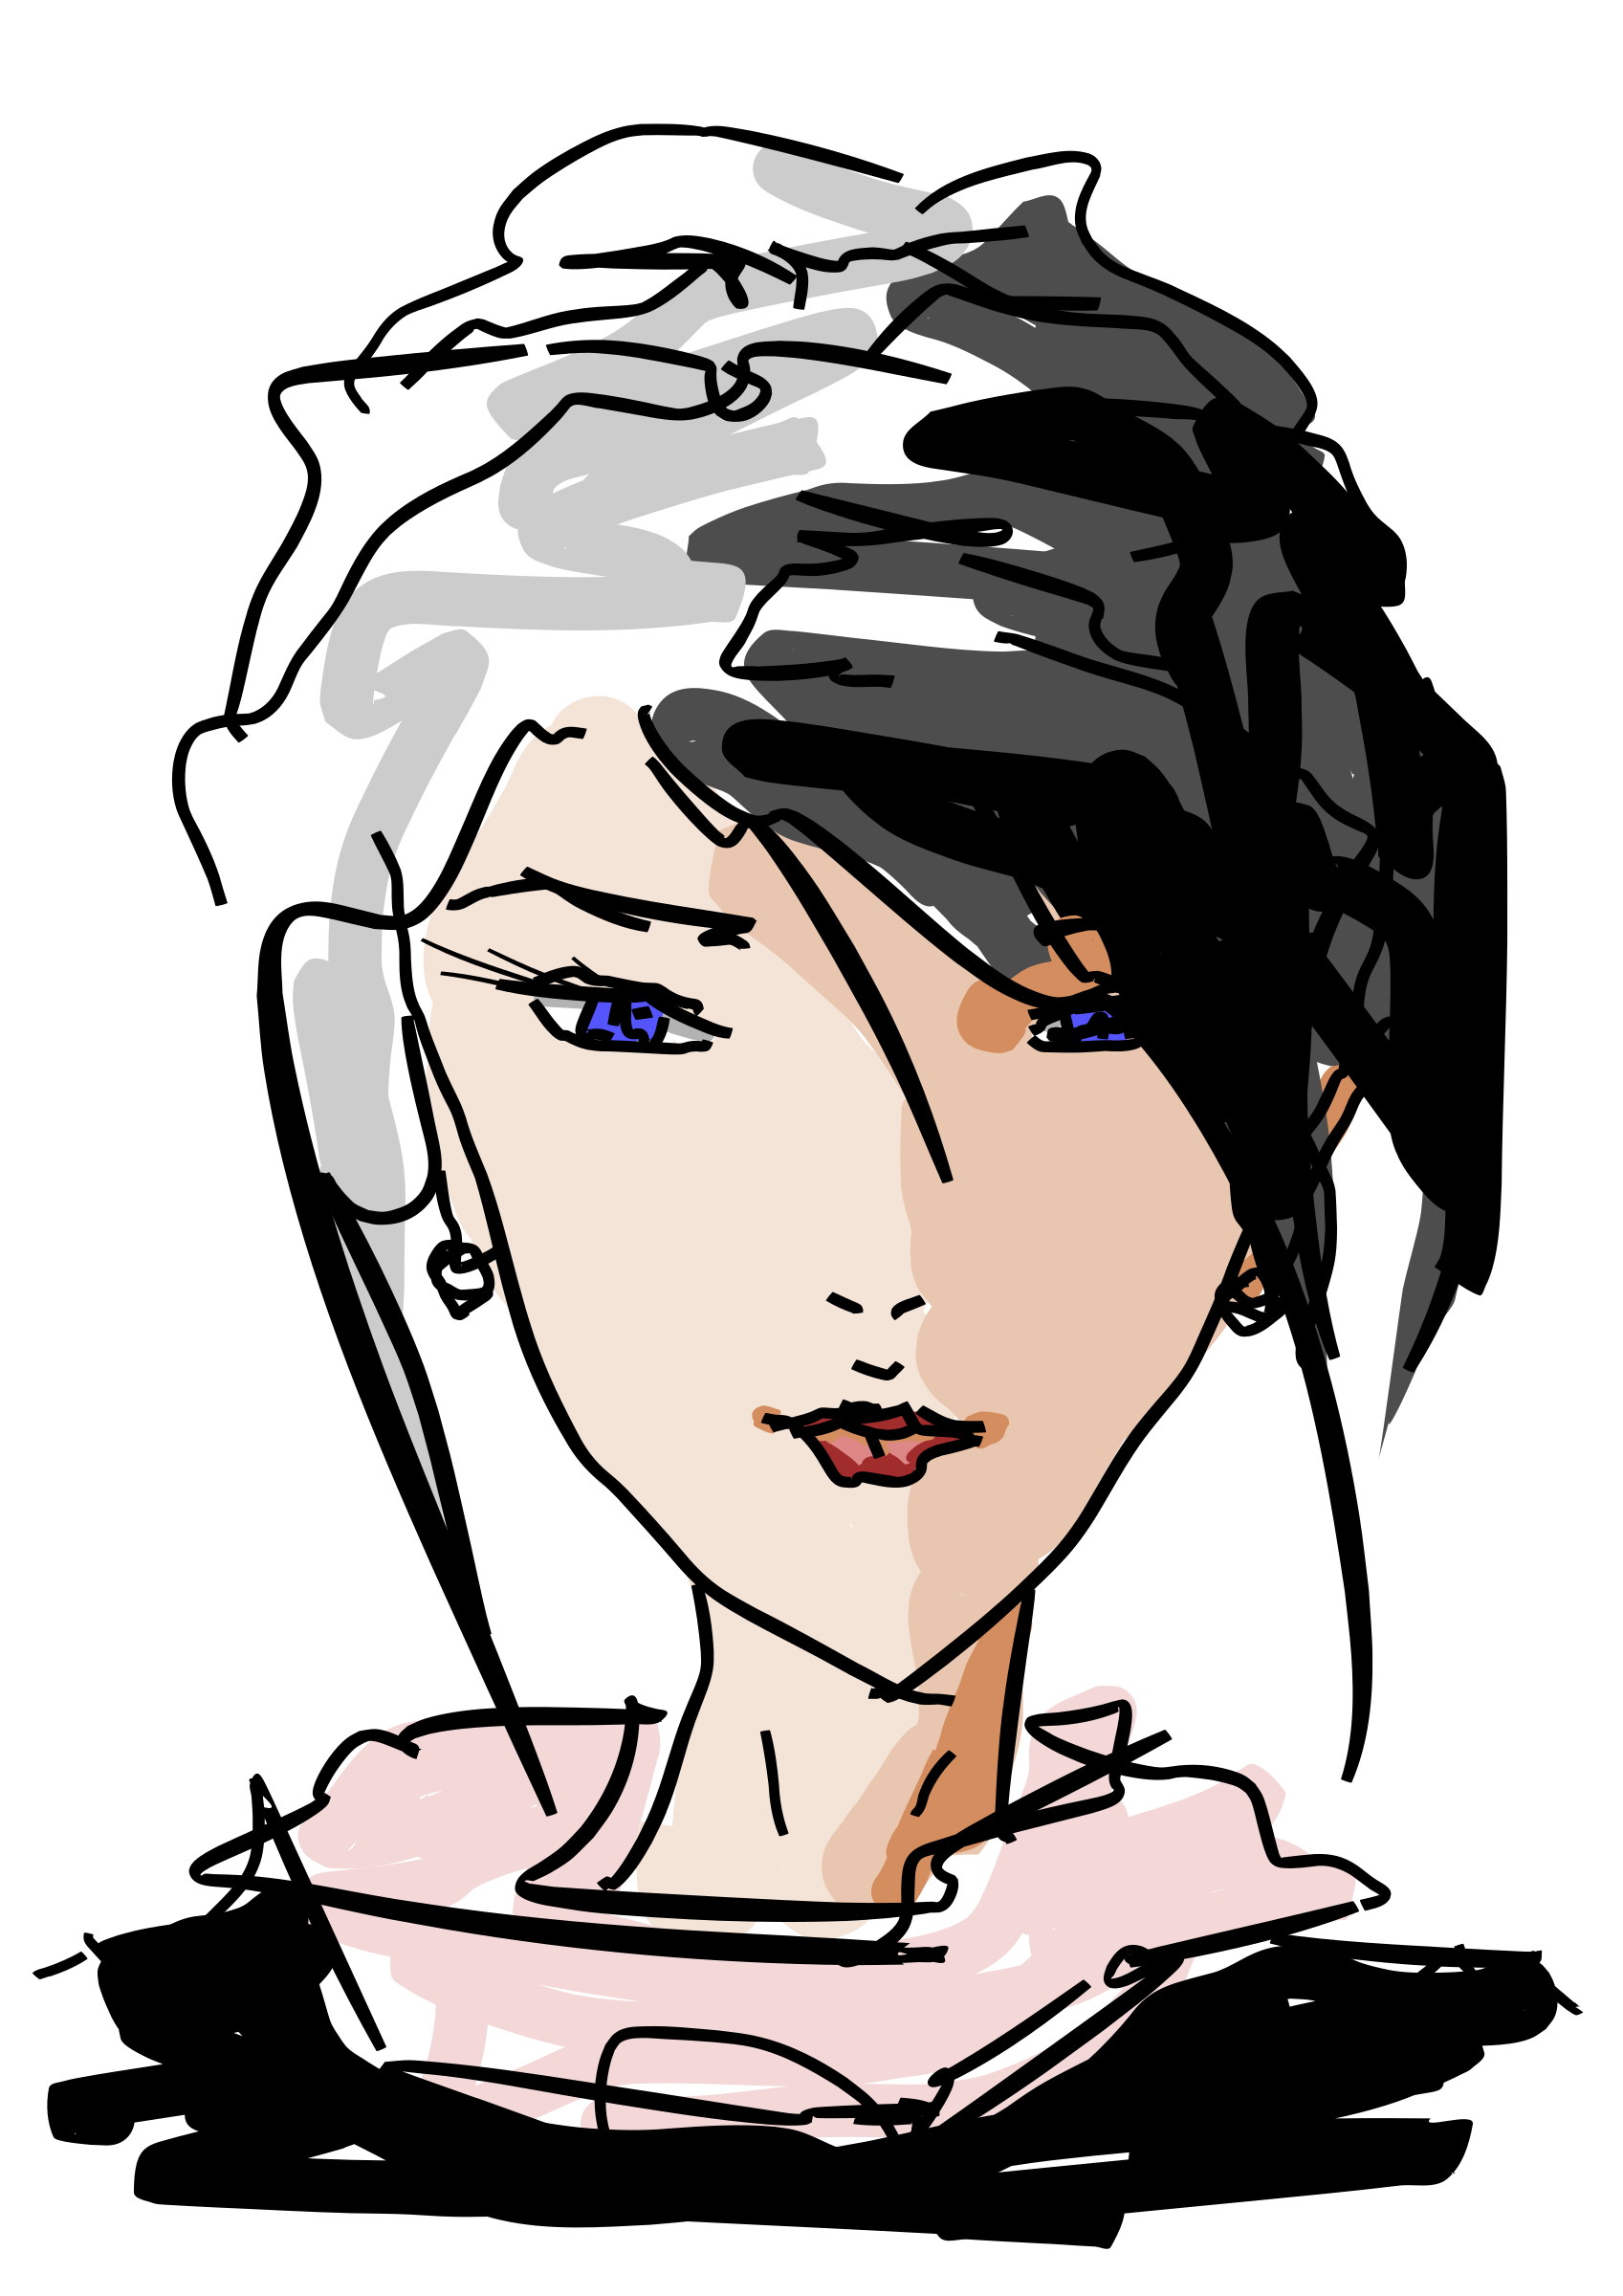 Faces clipart woman's face. Drawn woman s big